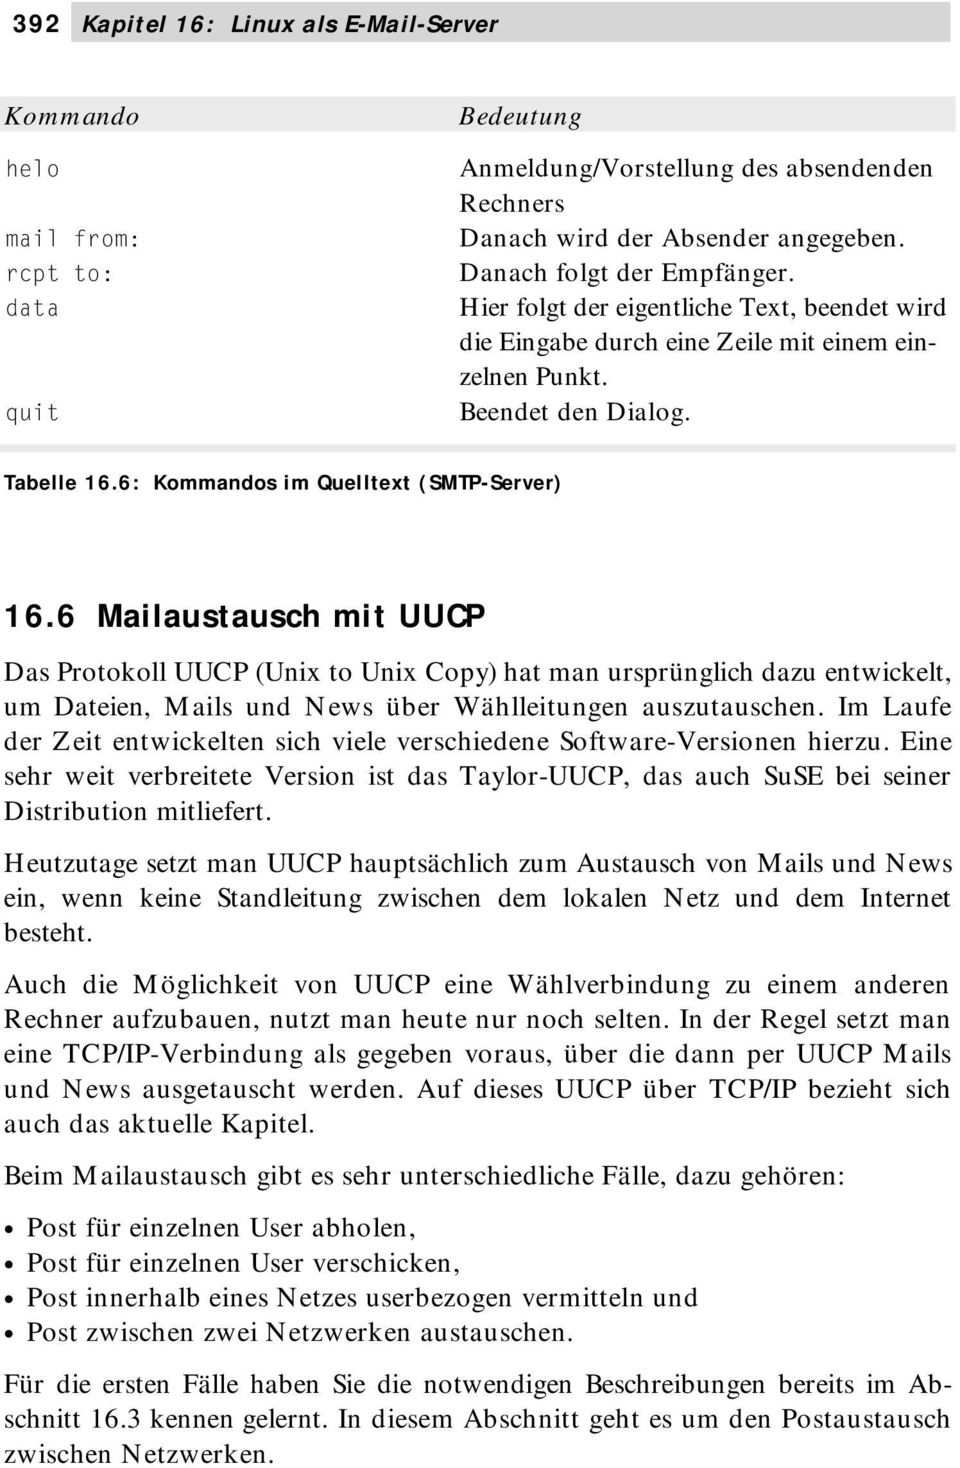 6: Kommandos im Quelltext (SMTP-Server) 16.